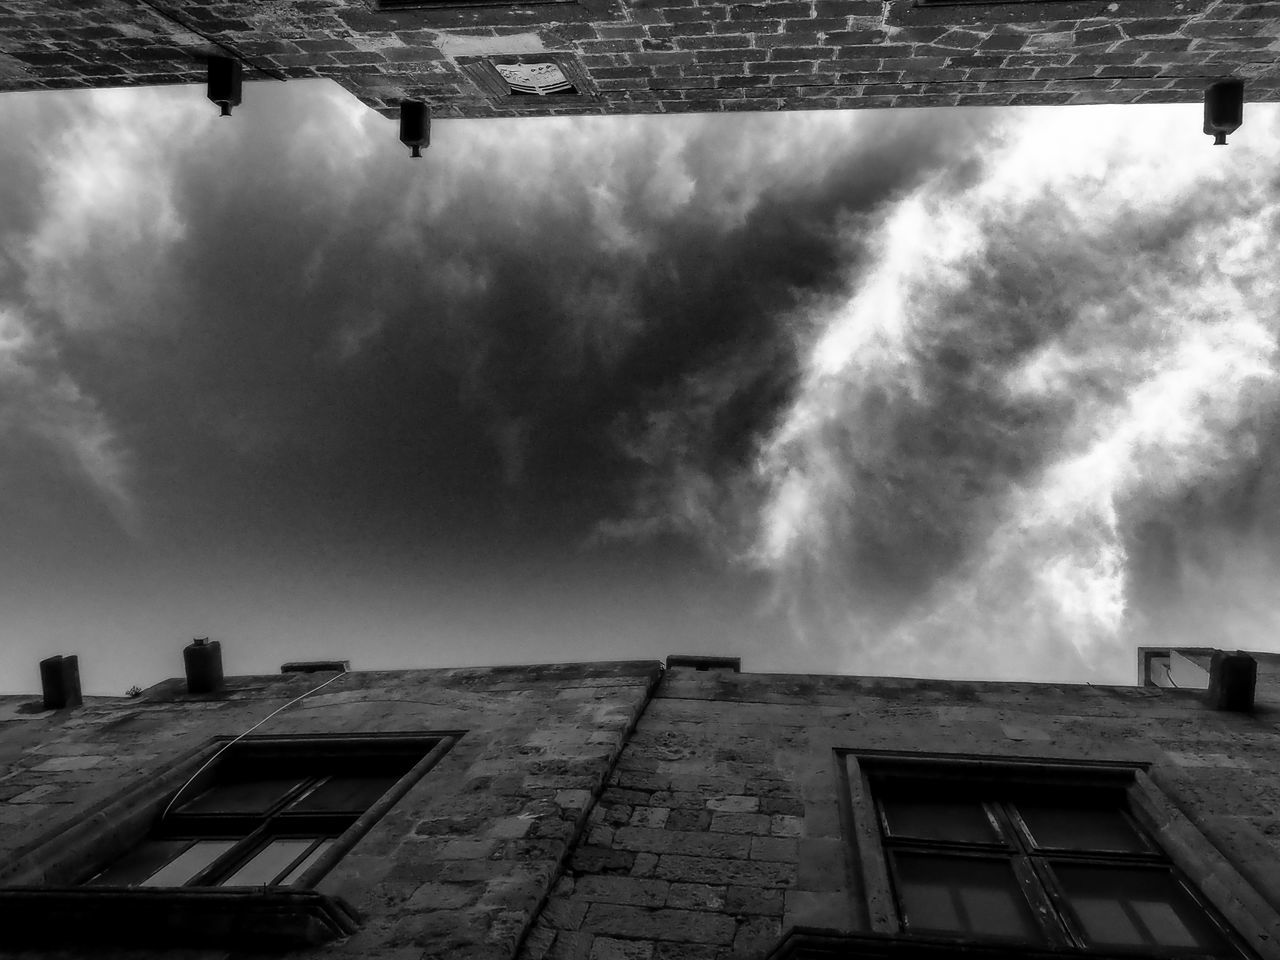 building exterior, architecture, built structure, low angle view, sky, no people, outdoors, cloud - sky, day, city